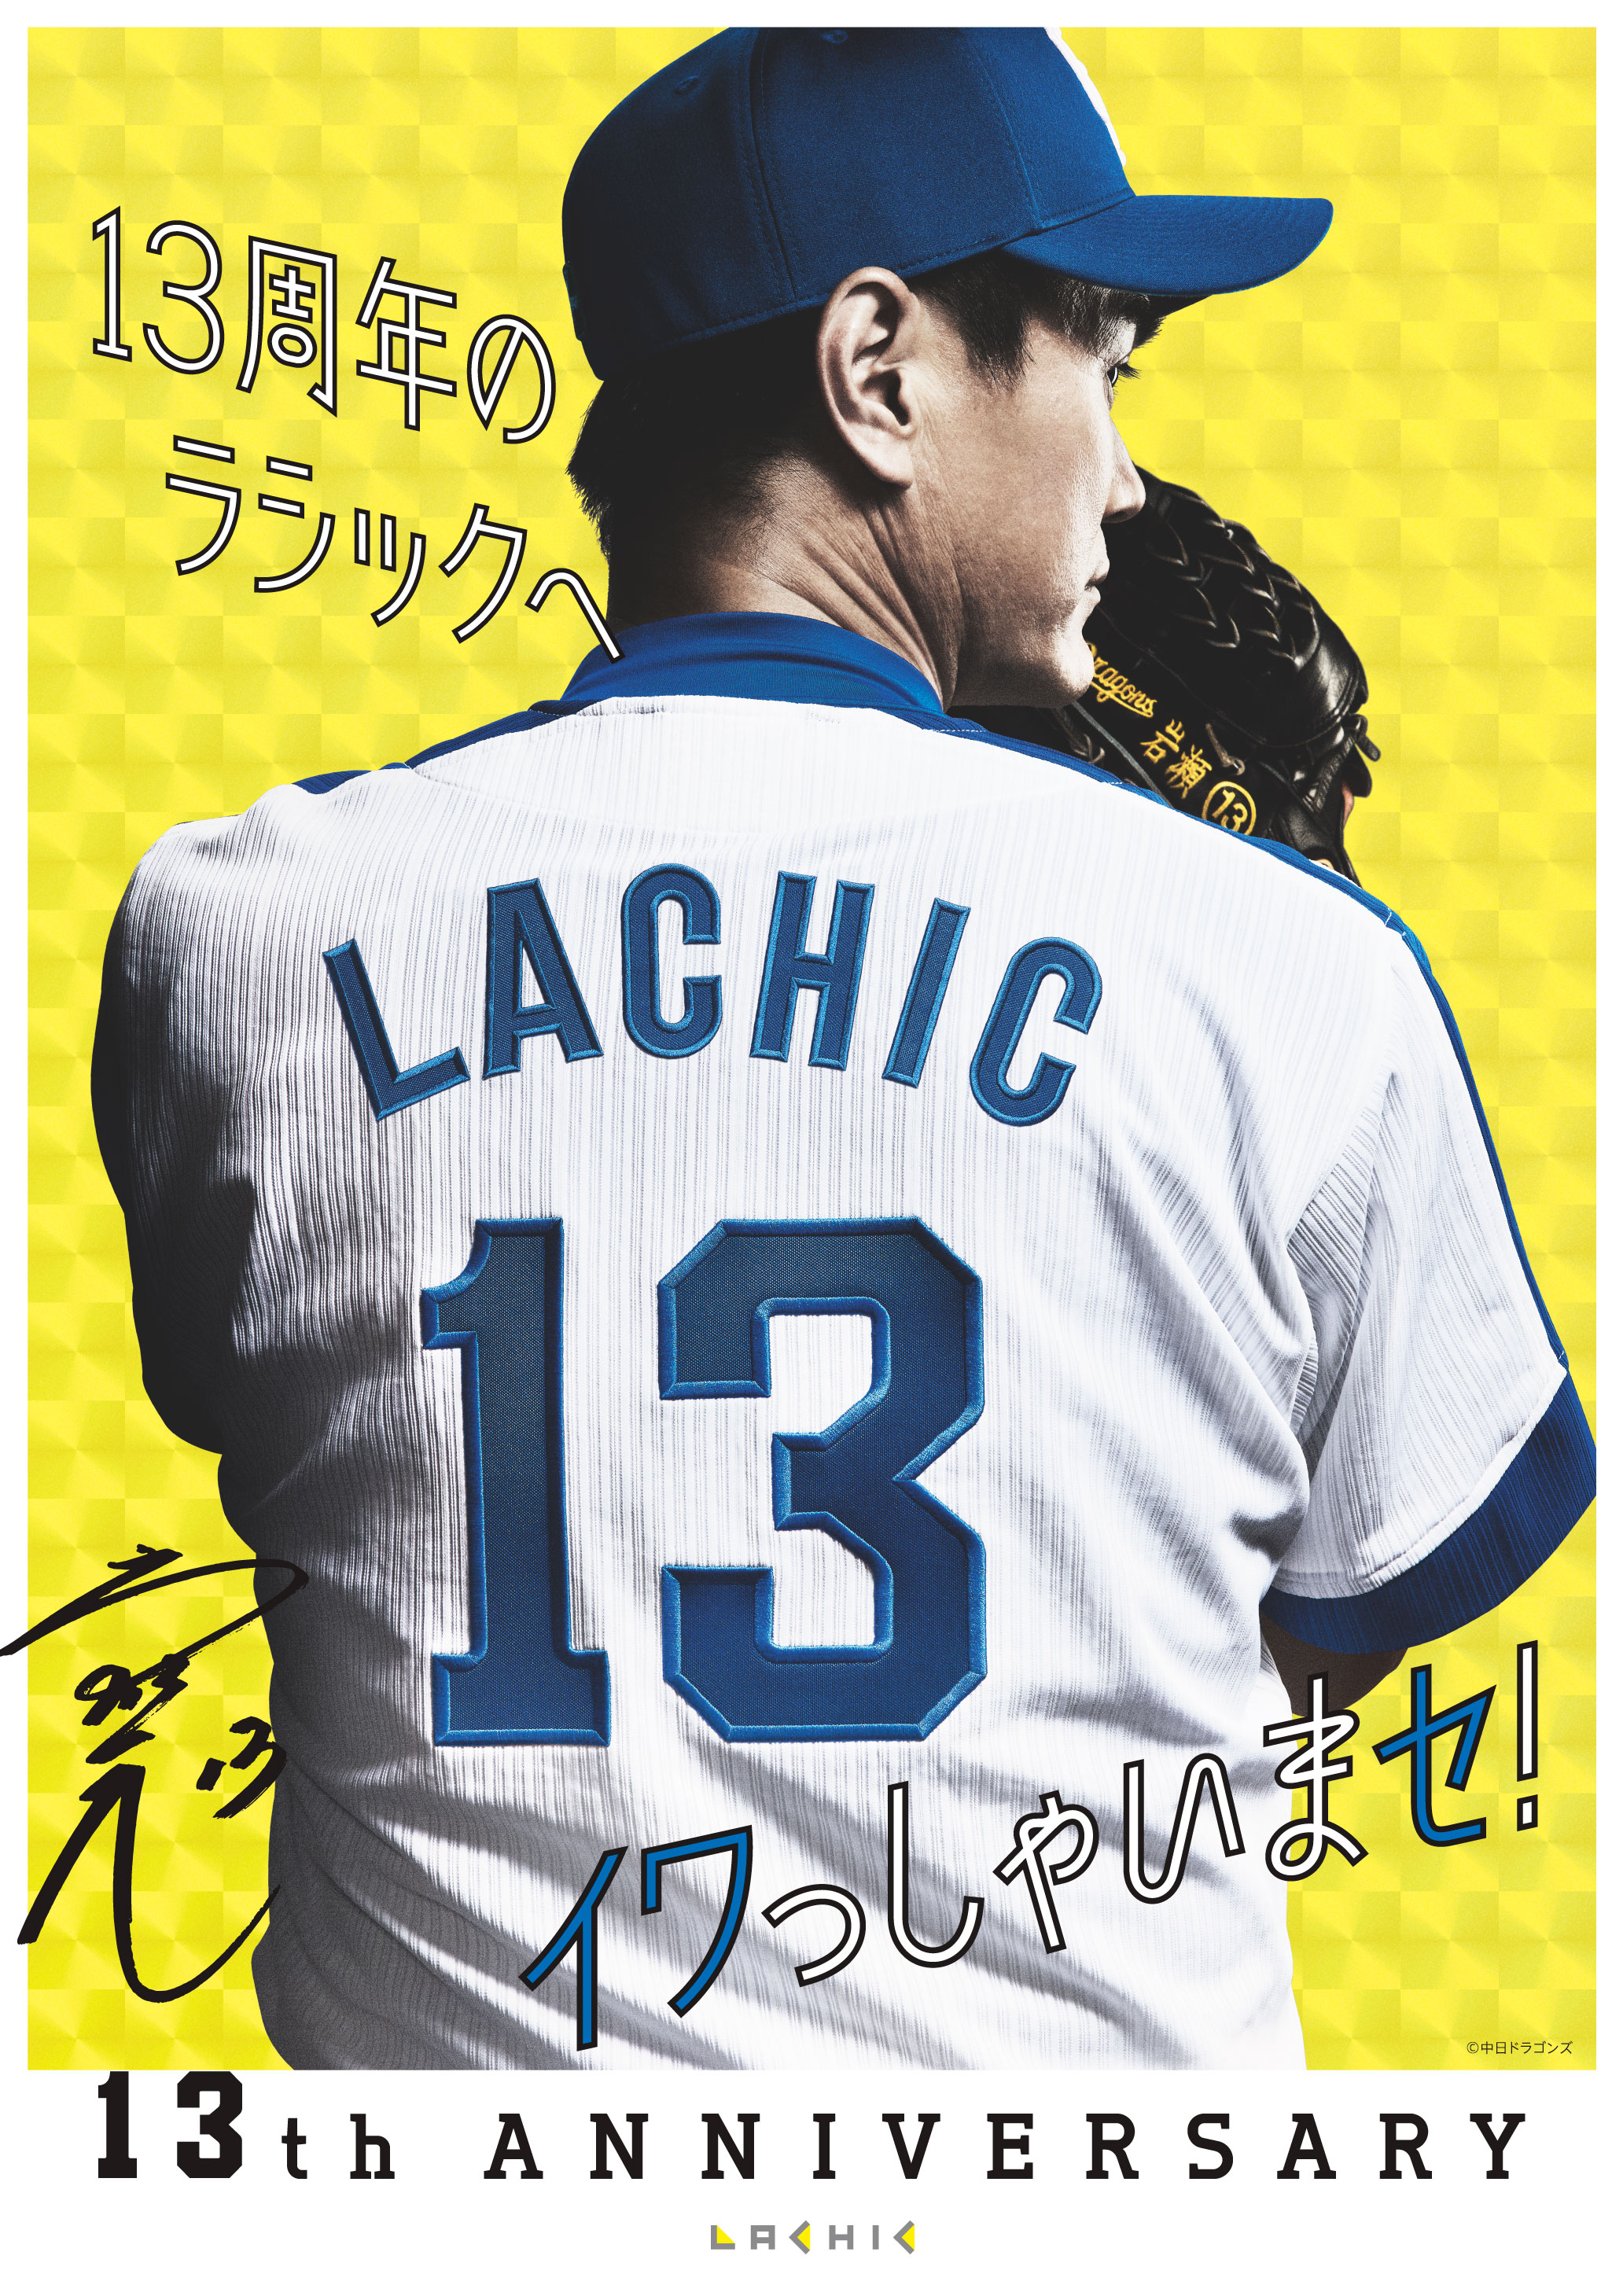 LACHIC 13th Anniversary